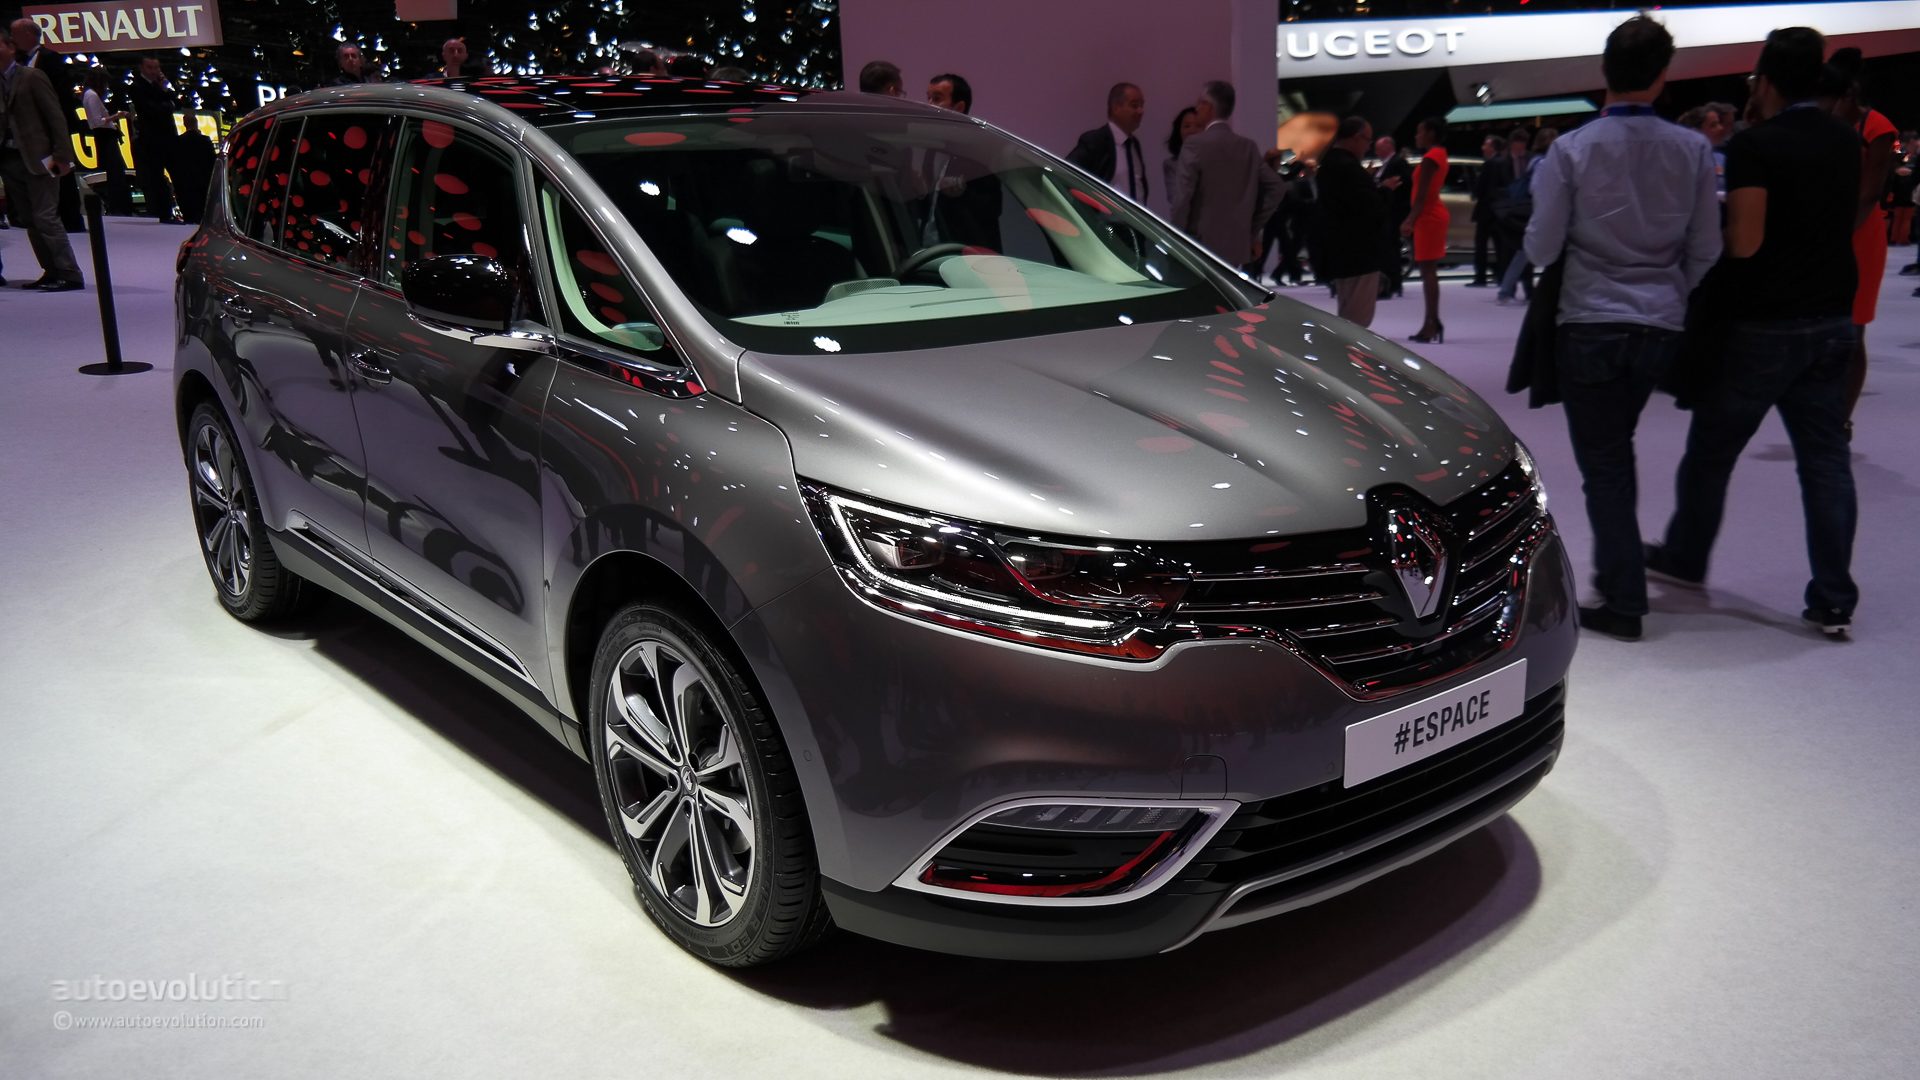 2015 renault espace configurator launched prices start at 34 200 in france autoevolution. Black Bedroom Furniture Sets. Home Design Ideas